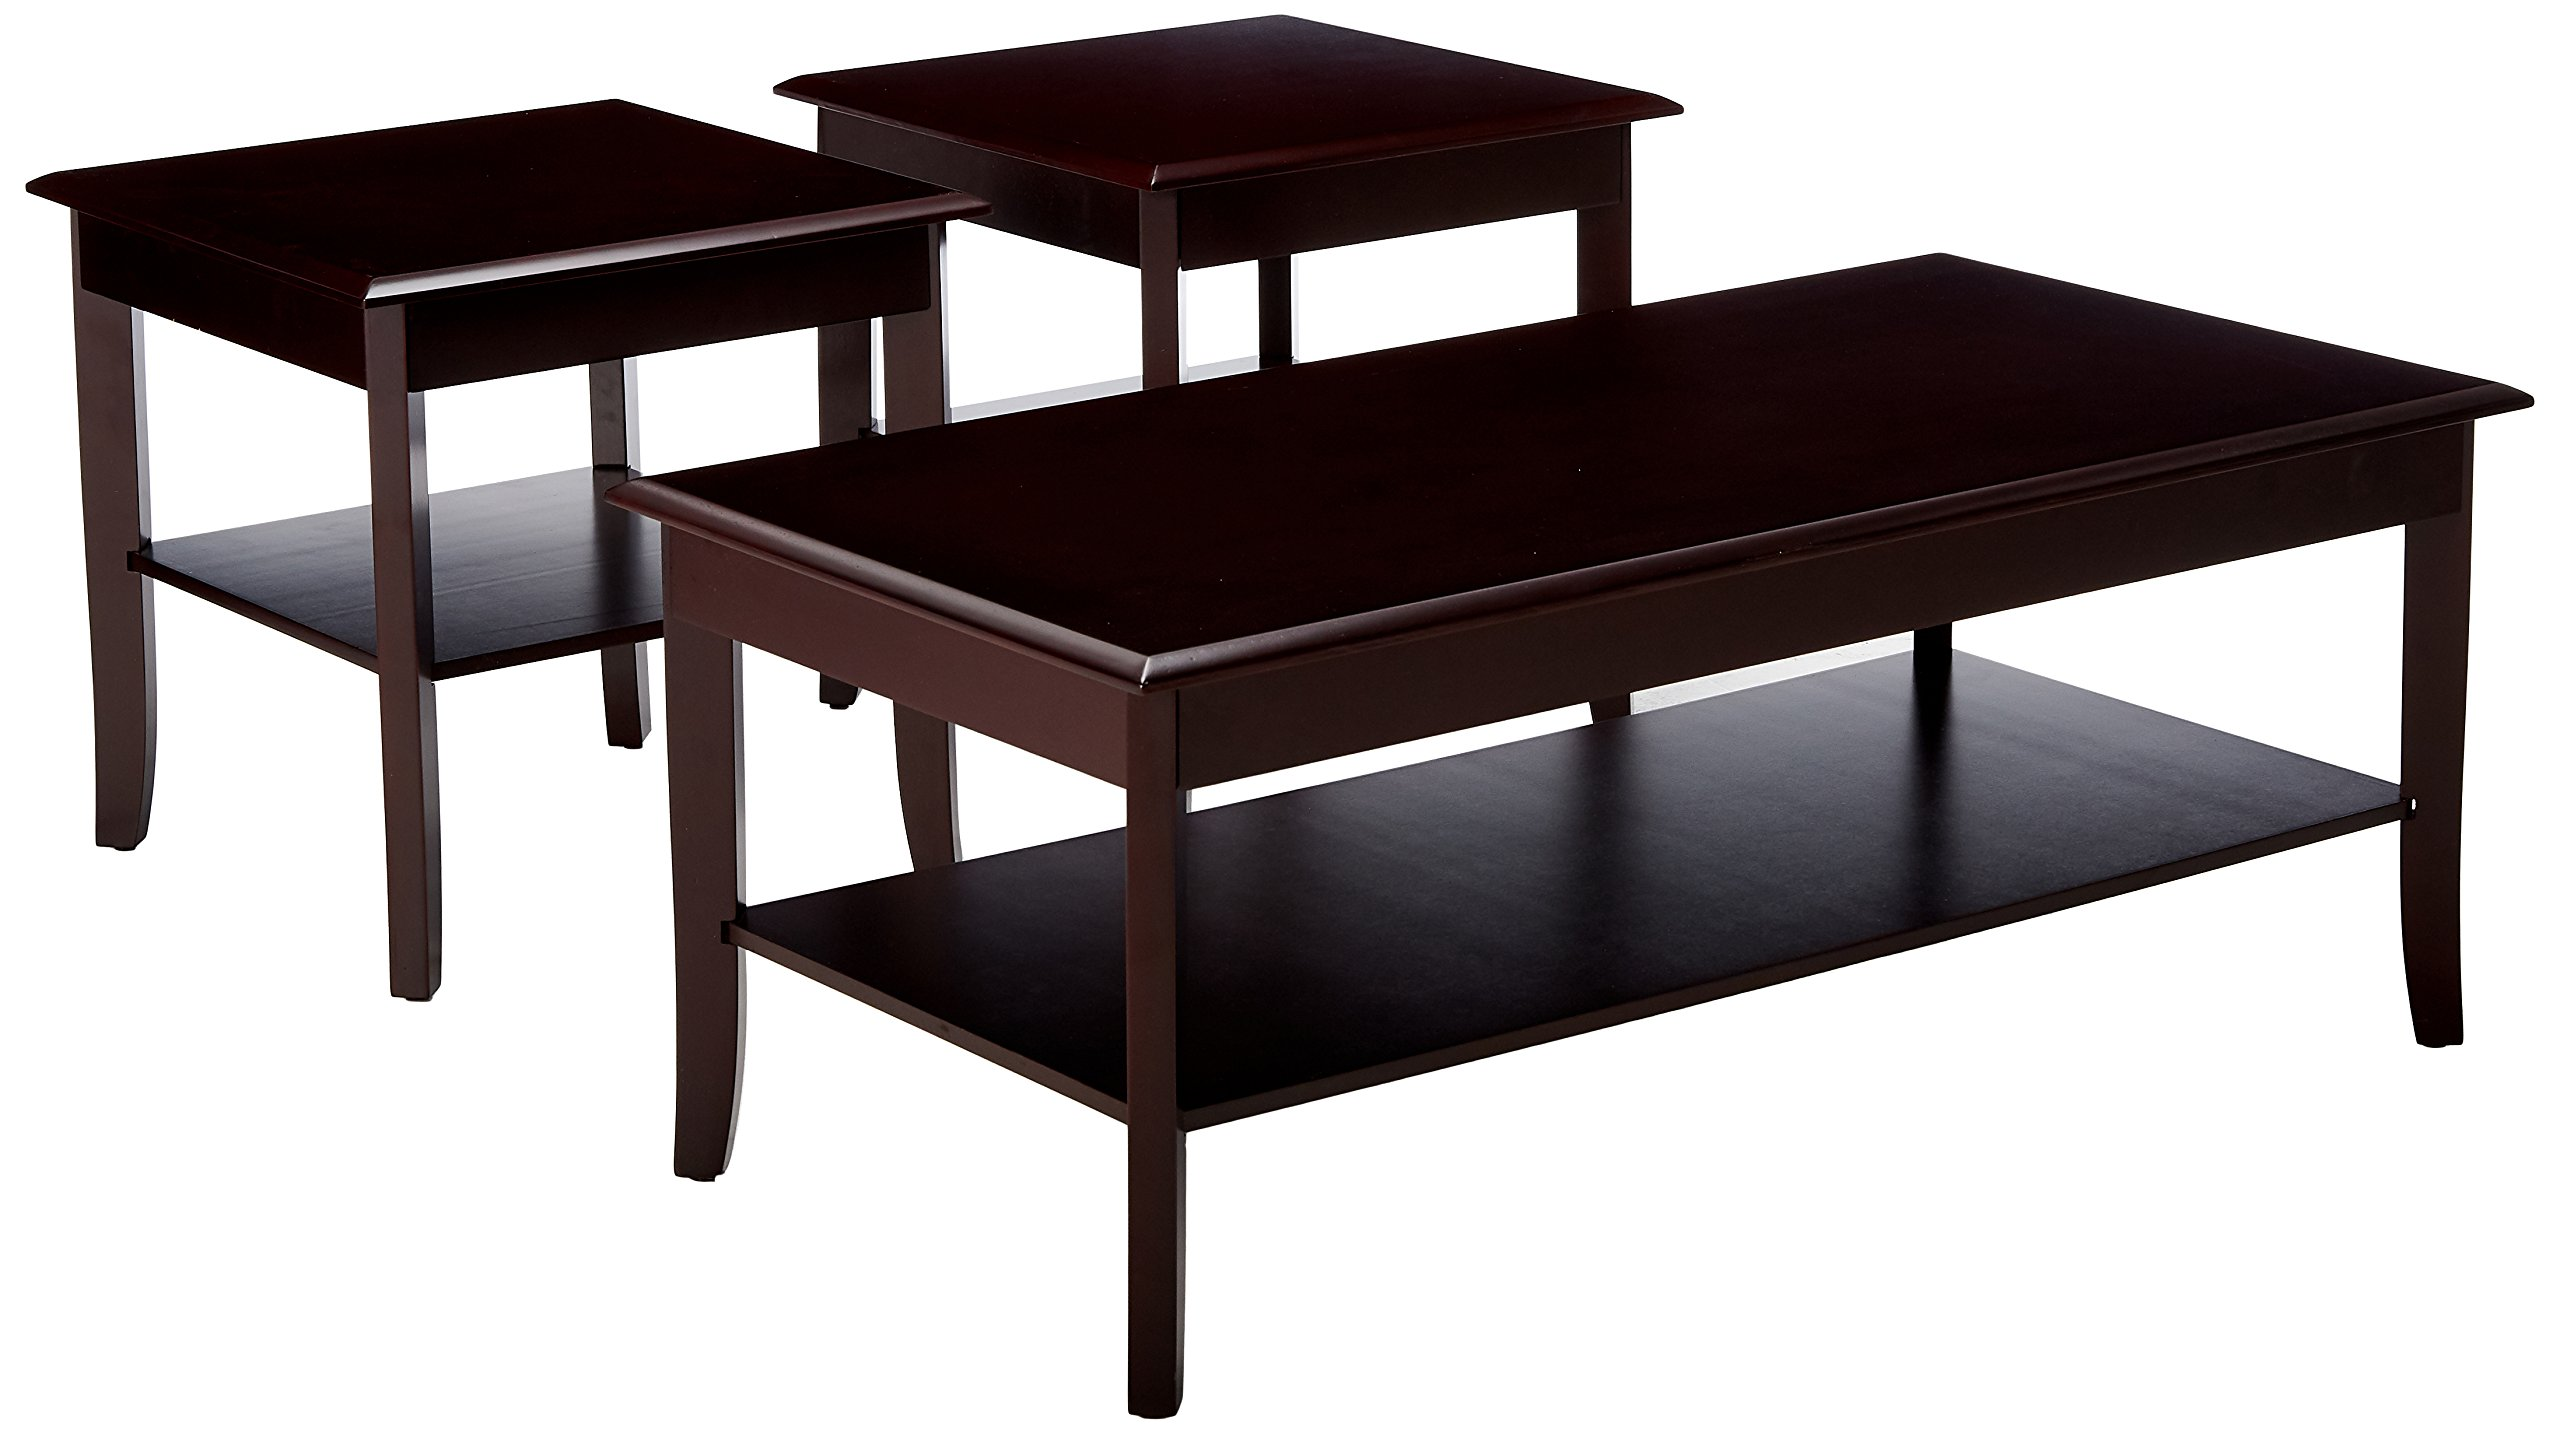 Kings Brand Furniture 3 Piece Wood Occasional Coffee Table & 2 End Tables Set, Cherry